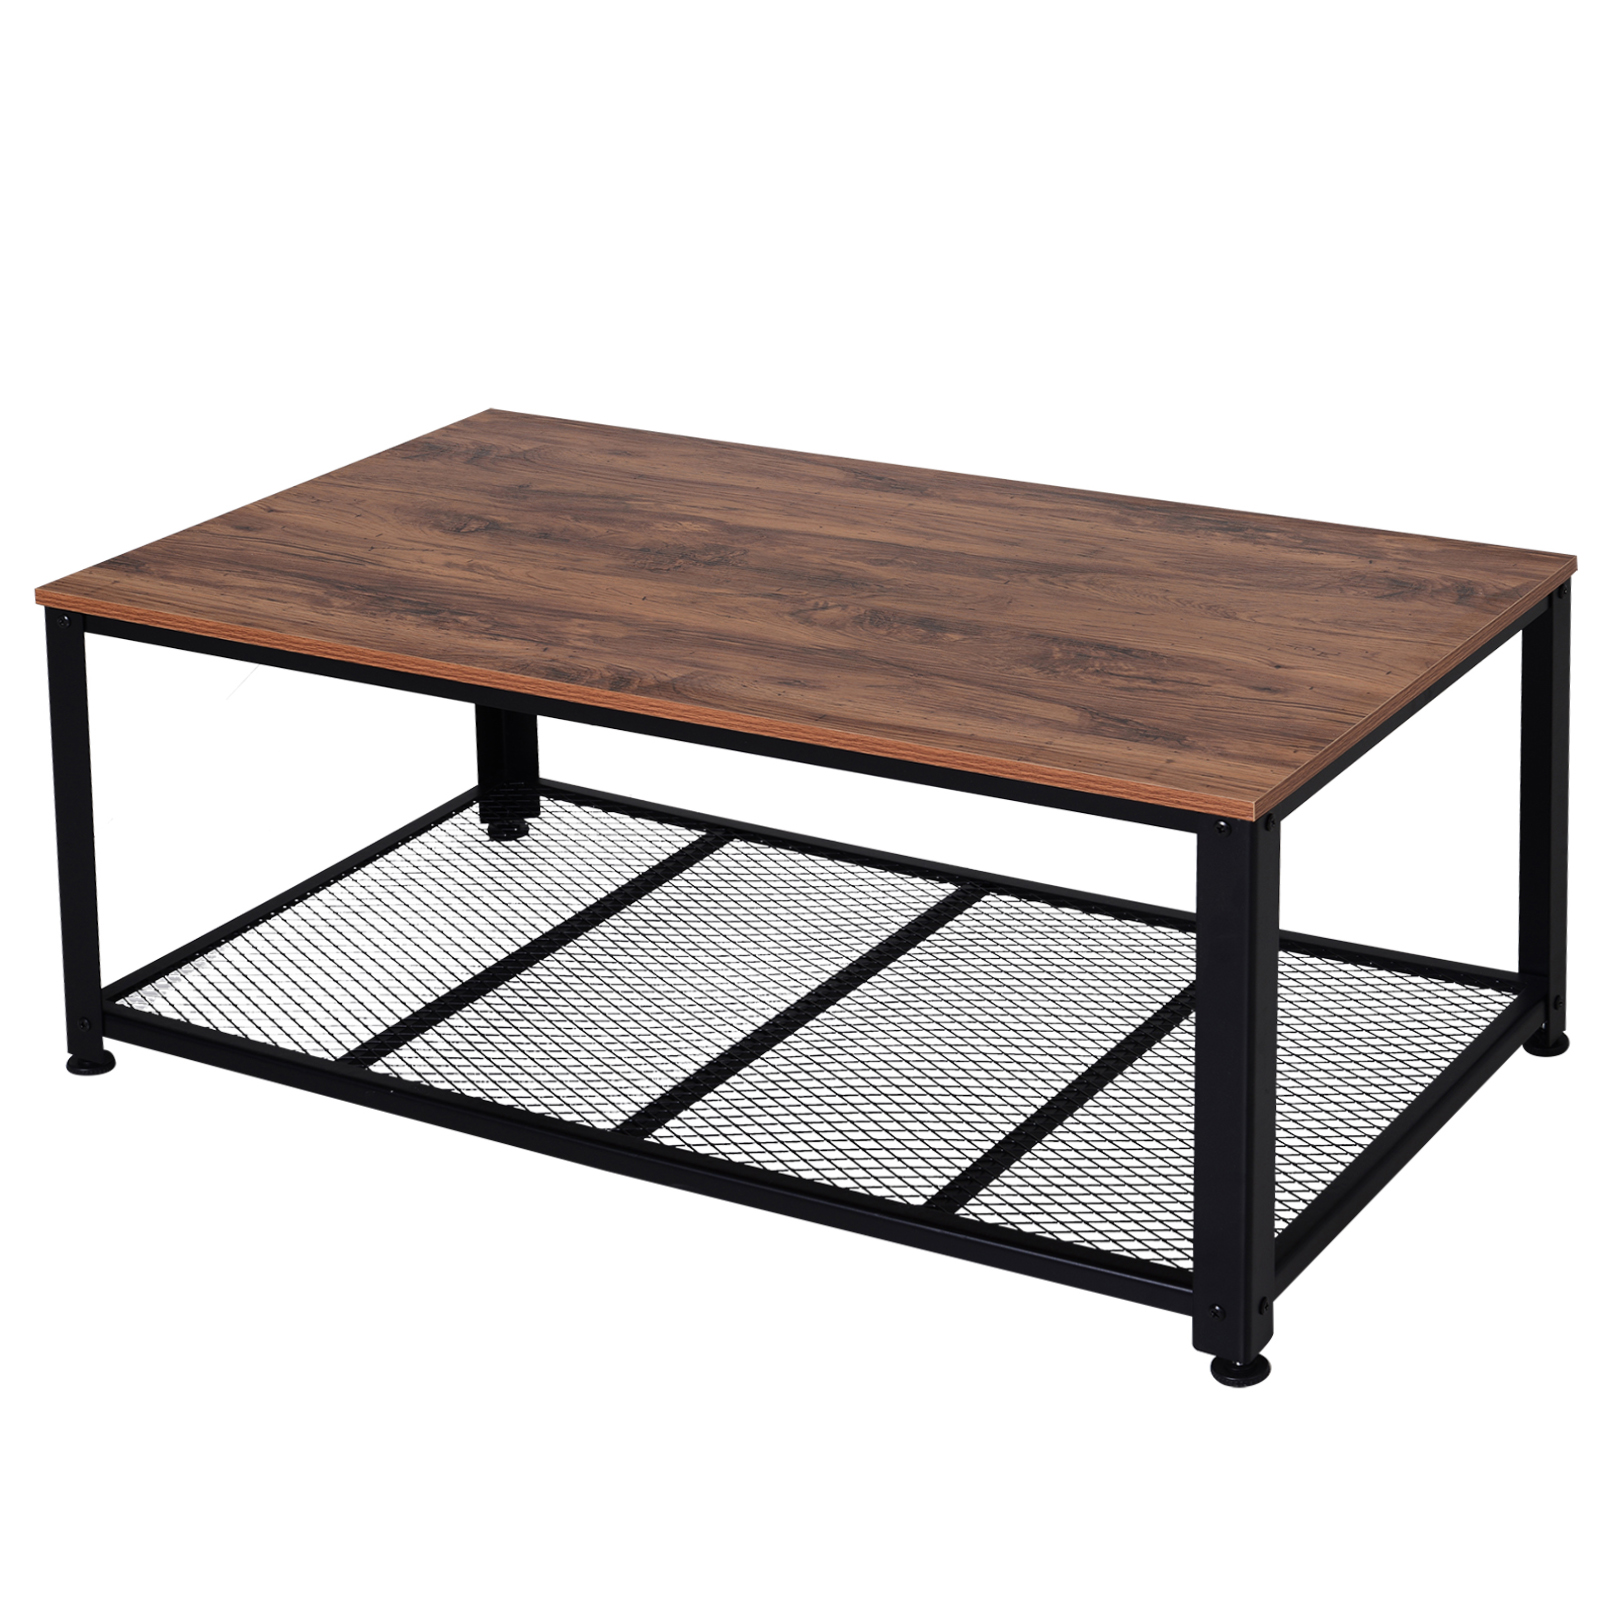 HOMCOM Industrial Style Living Room Coffee Table, Metal And Wood, With Bottom Shelf, (106x60x45.5cm)